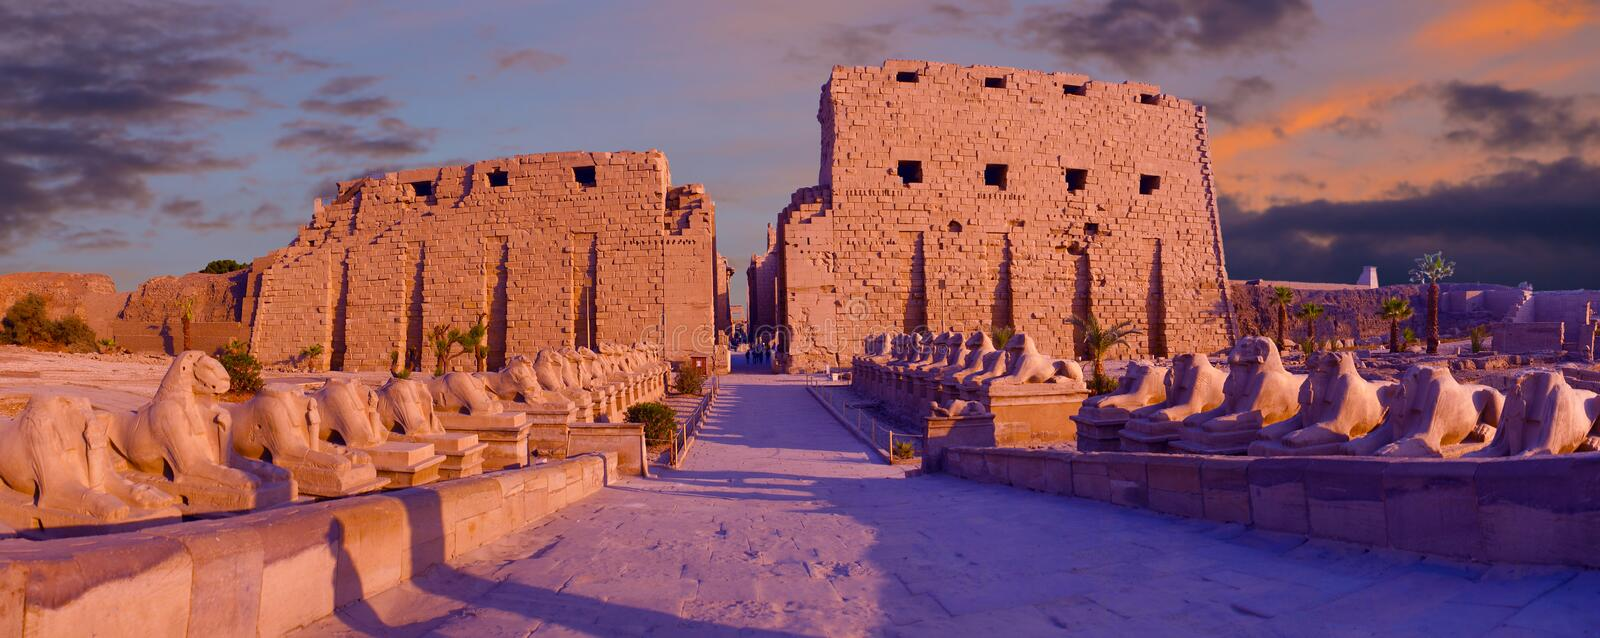 Colossi of Memnon, Luxor, Thebes AfricaKarnak Temple sphinxes alley, The ruins of the temple. Karnak Temple sphinxes alley, The ruins of the temple egypt stock photos